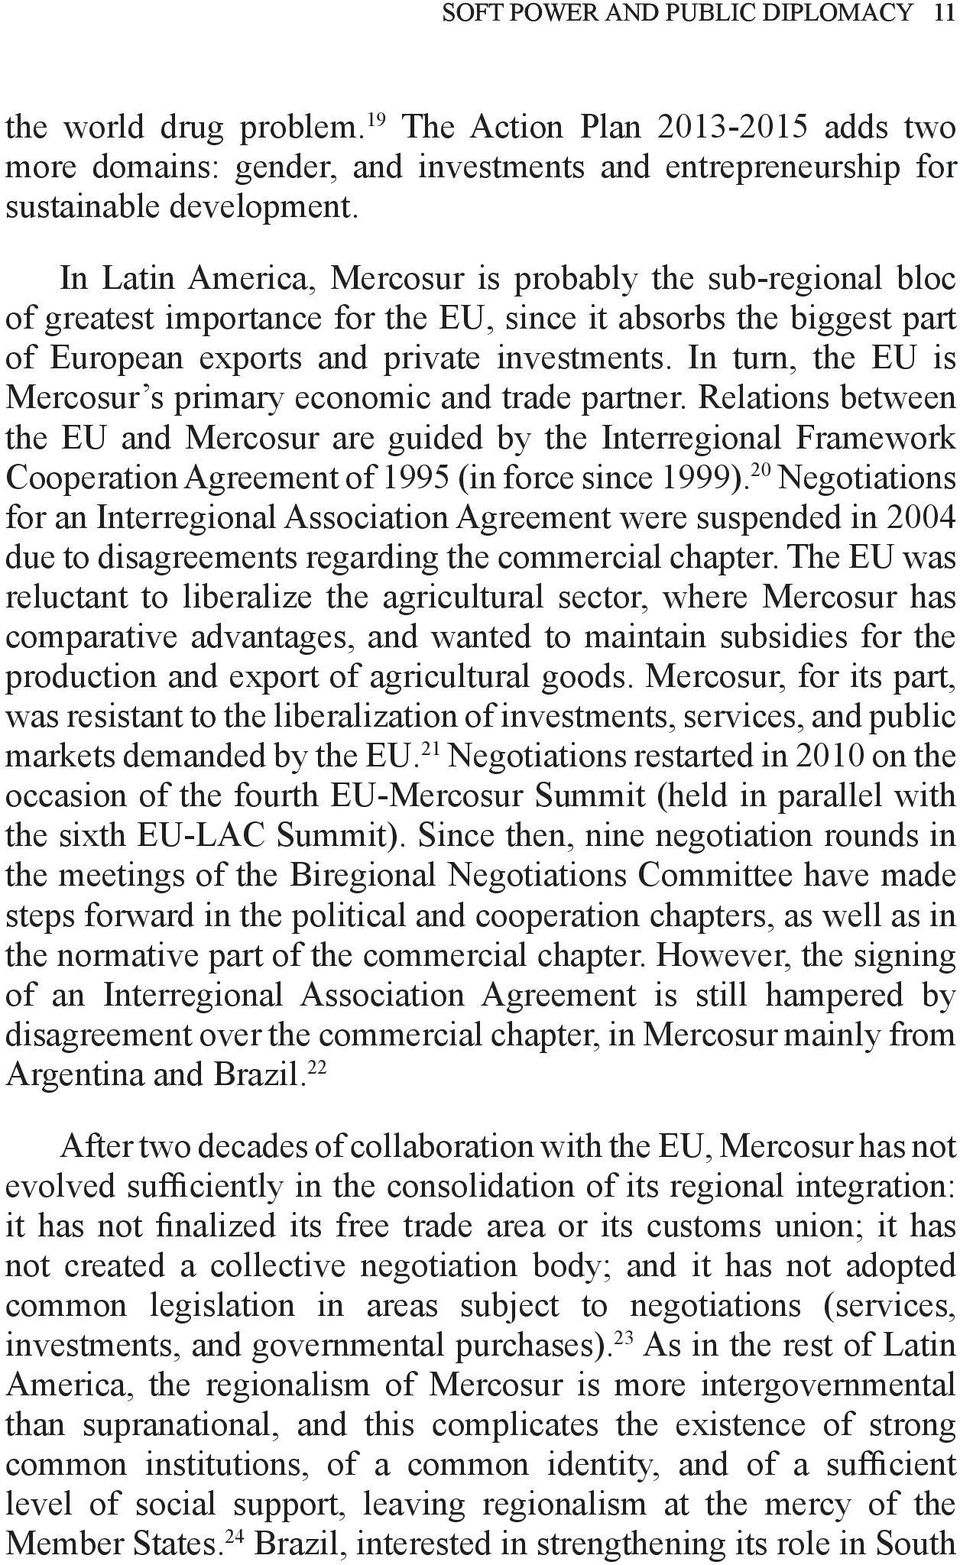 In turn, the EU is Mercosur s primary economic and trade partner. Relations between the EU and Mercosur are guided by the Interregional Framework Cooperation Agreement of 1995 (in force since 1999).